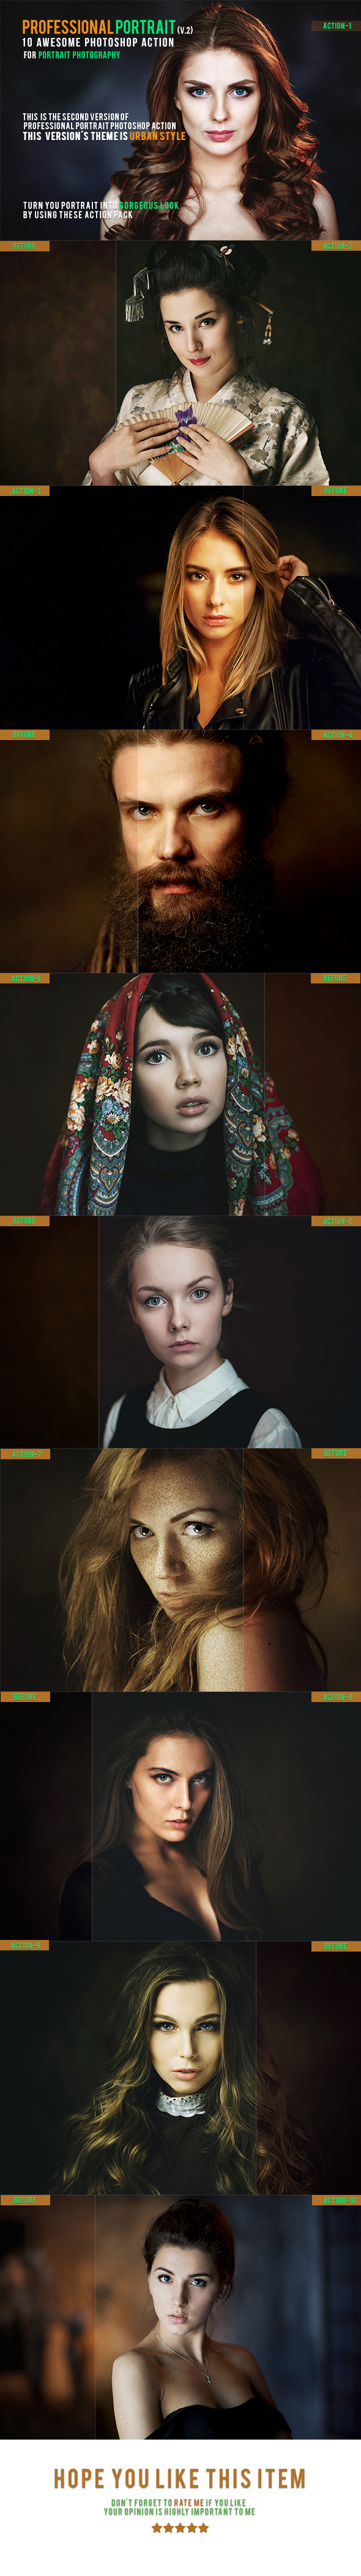 Professional Portrait (V.2) Photoshop Action - Photo Effects Actions